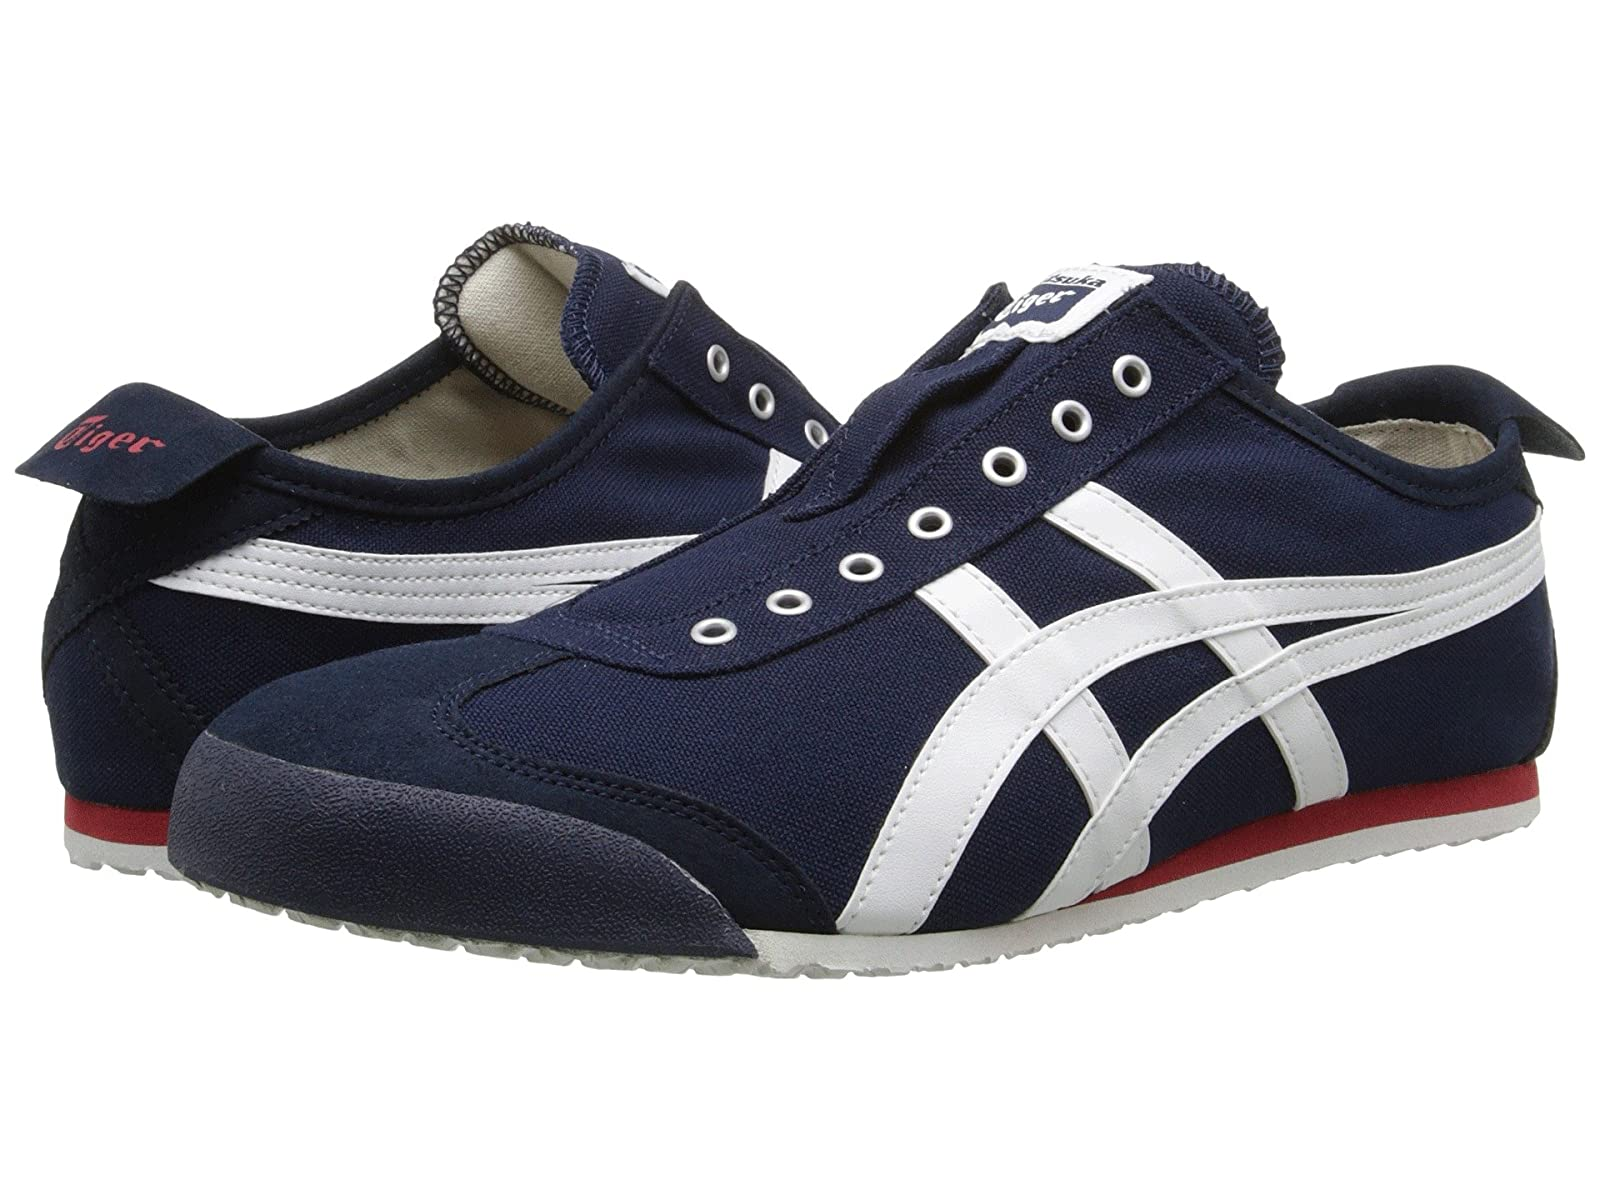 Onitsuka Tiger by Asics Mexico 66® Slip-OnAtmospheric grades have affordable shoes